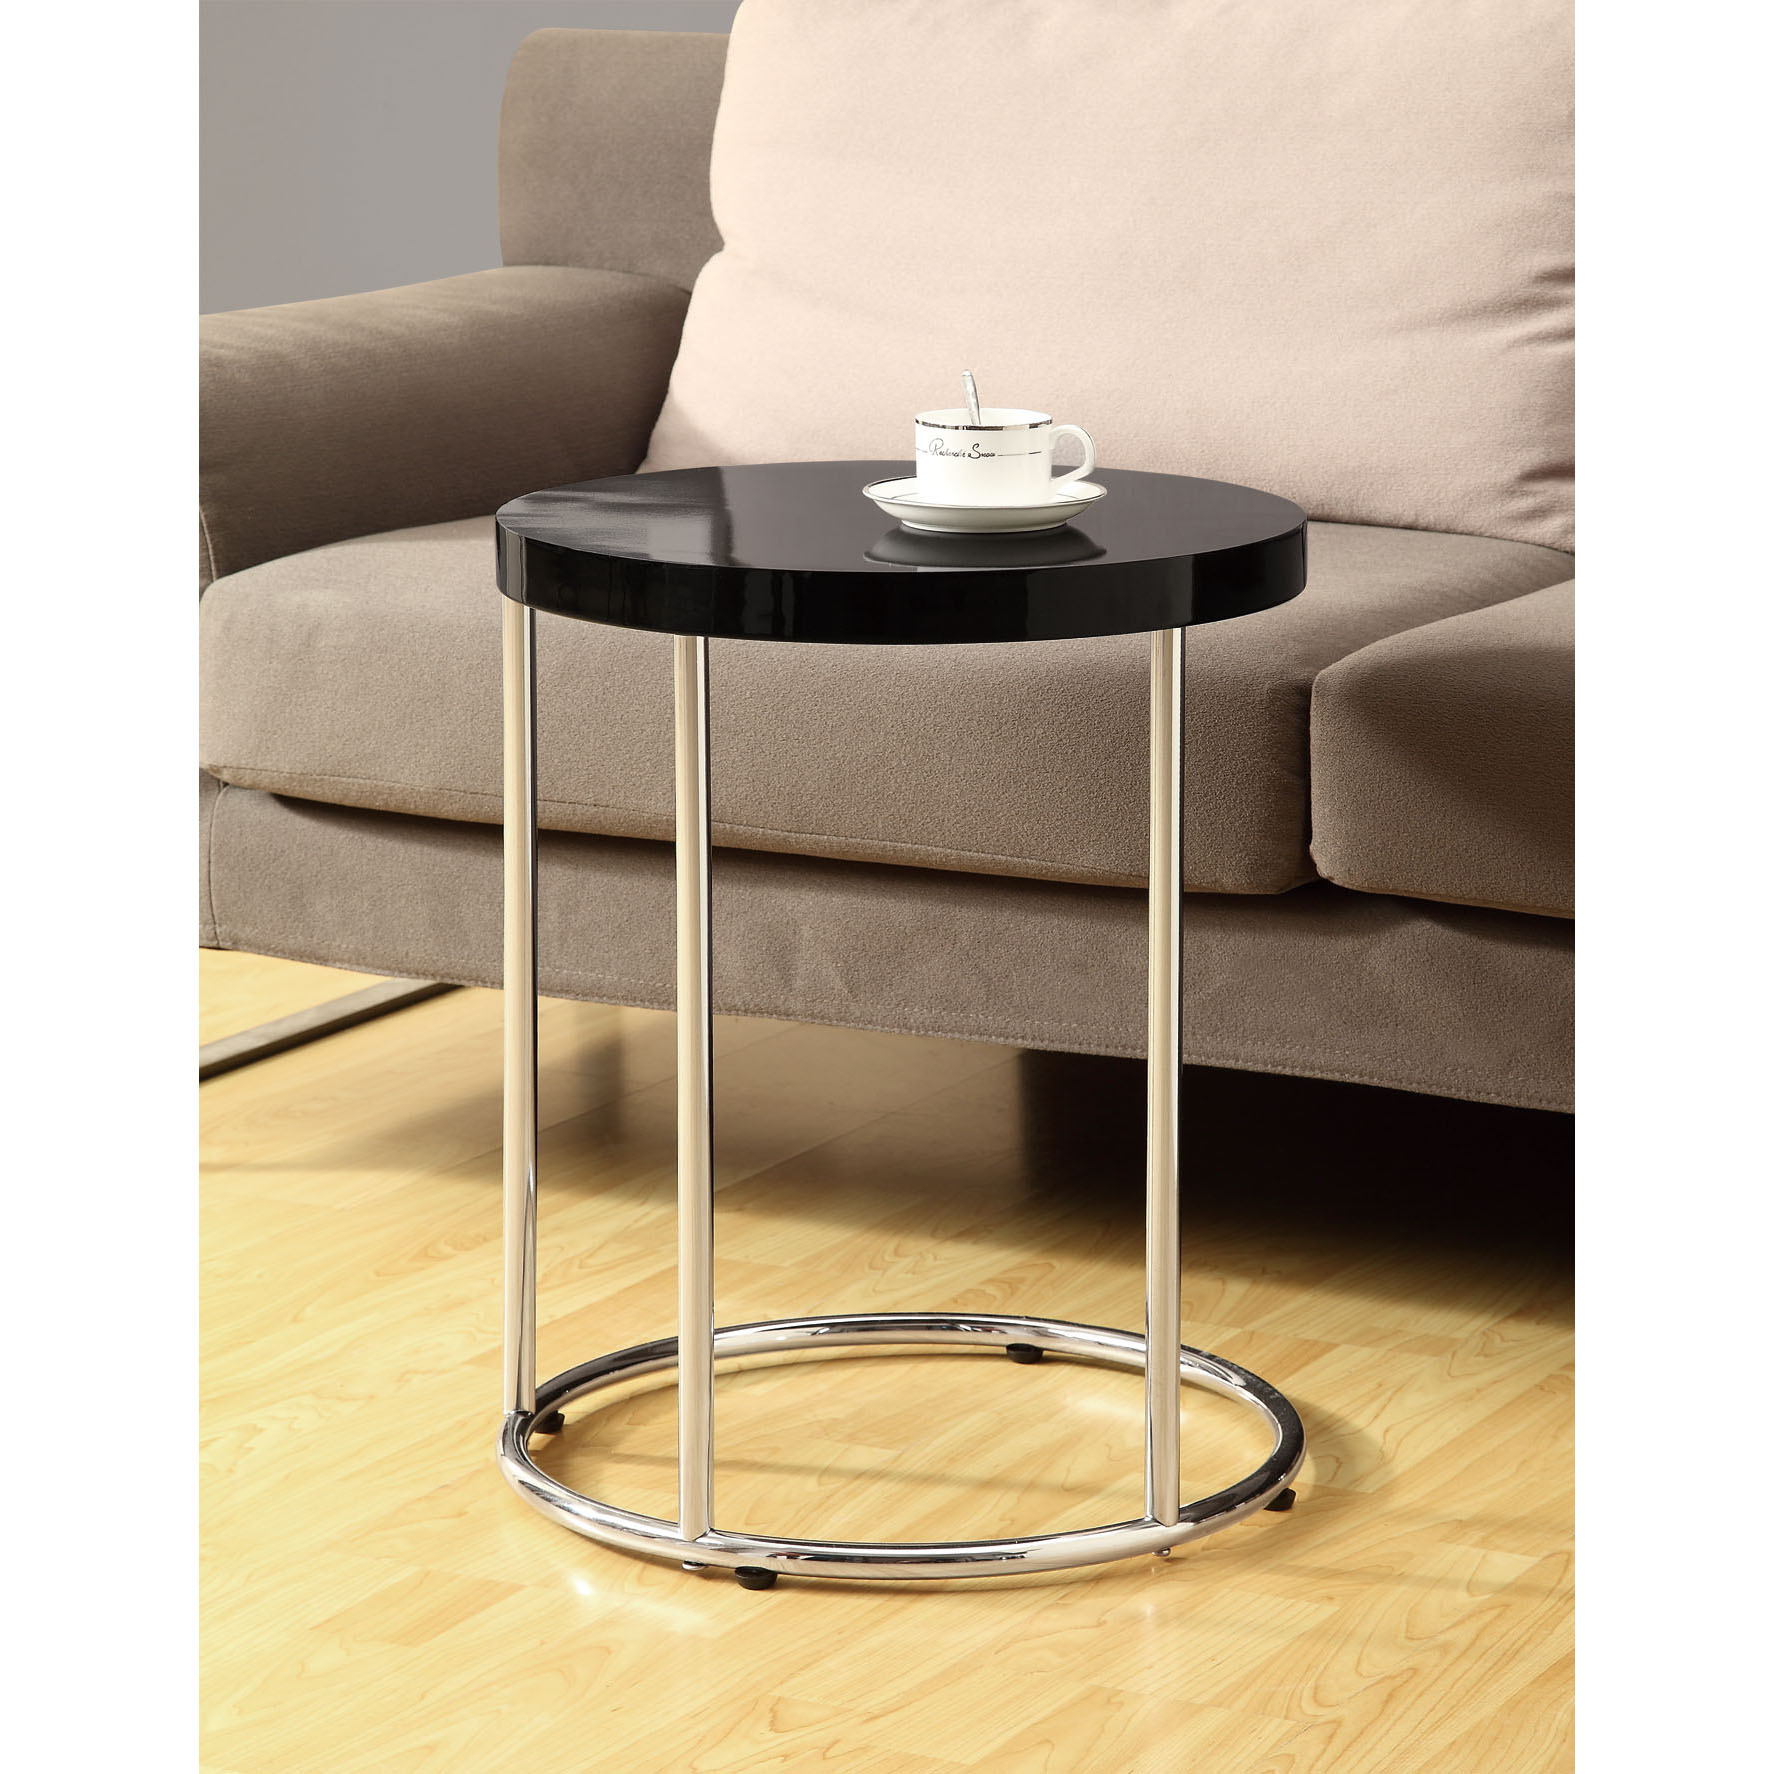 metal accent coffe table elegant home design and stylish black pottery barn griffin cocktail tables target yellow side hobby lobby coffee frog drum small with drawers zebra chair